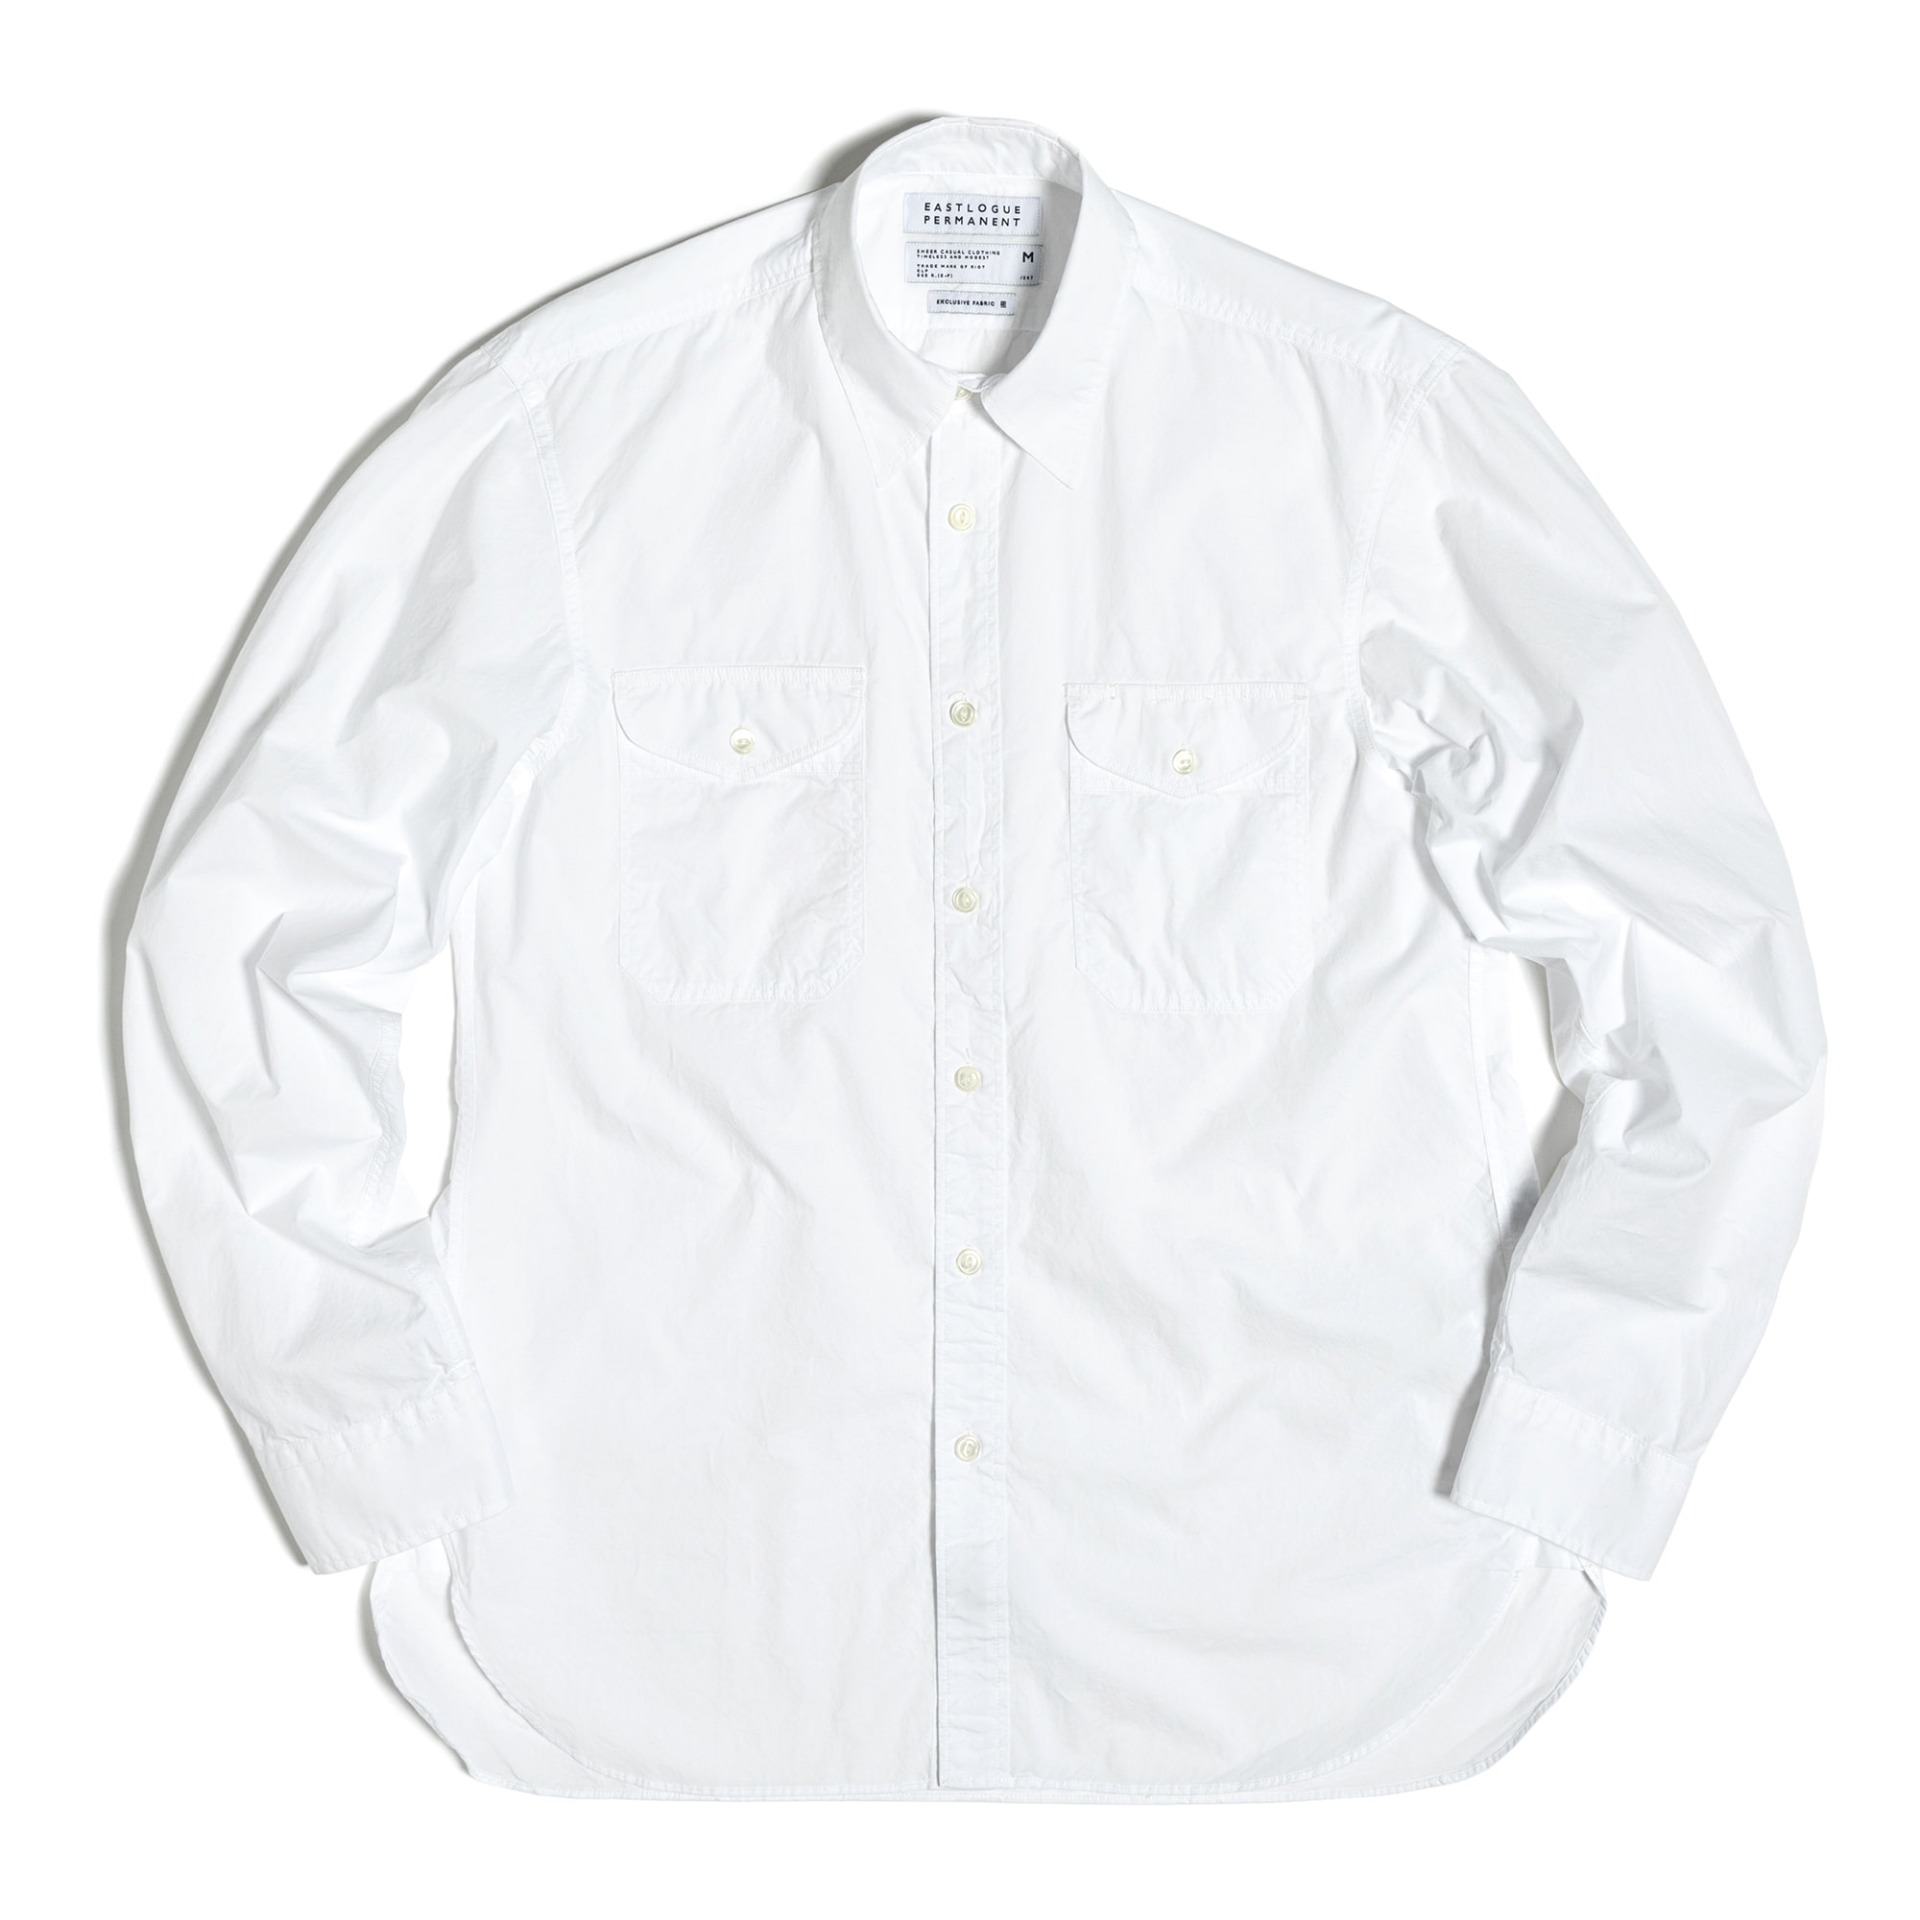 ELP WORK SHIRT (White)